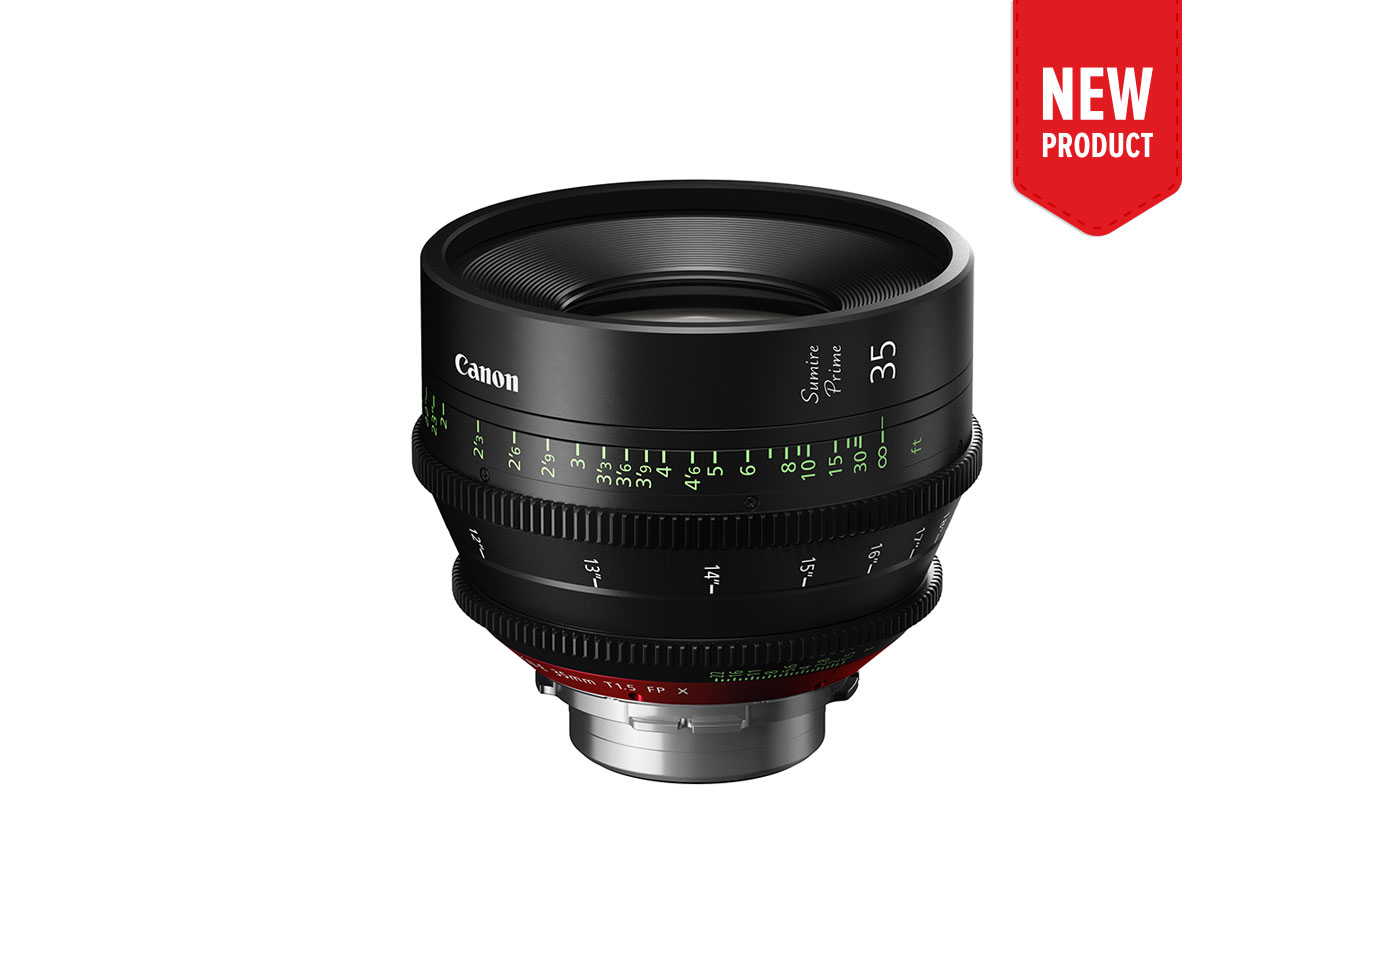 Product image of CN E35mm T1.5 FP X